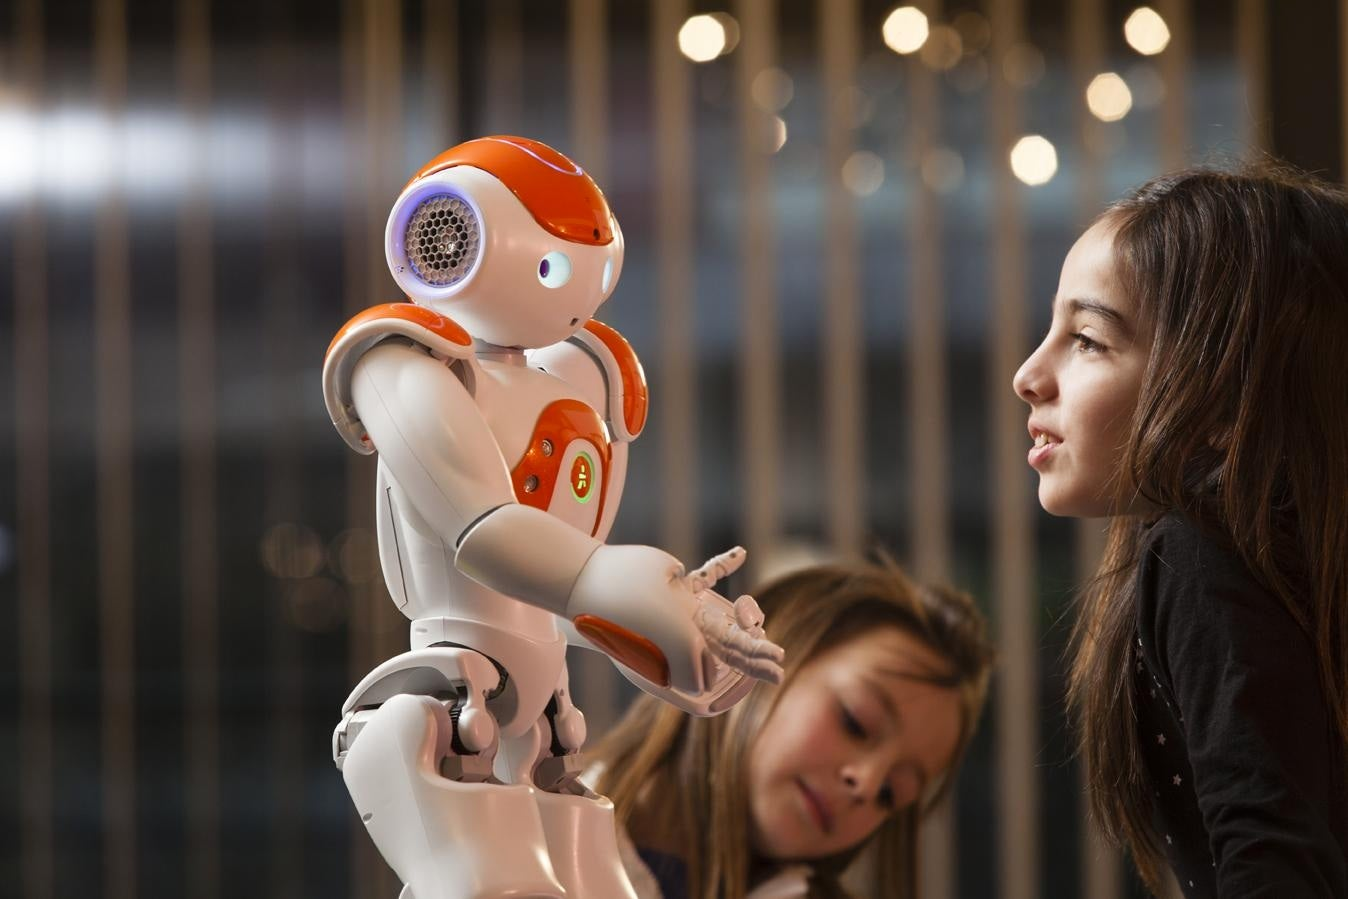 Robots Seem More Thoughtful If They Glance Away While They Talk